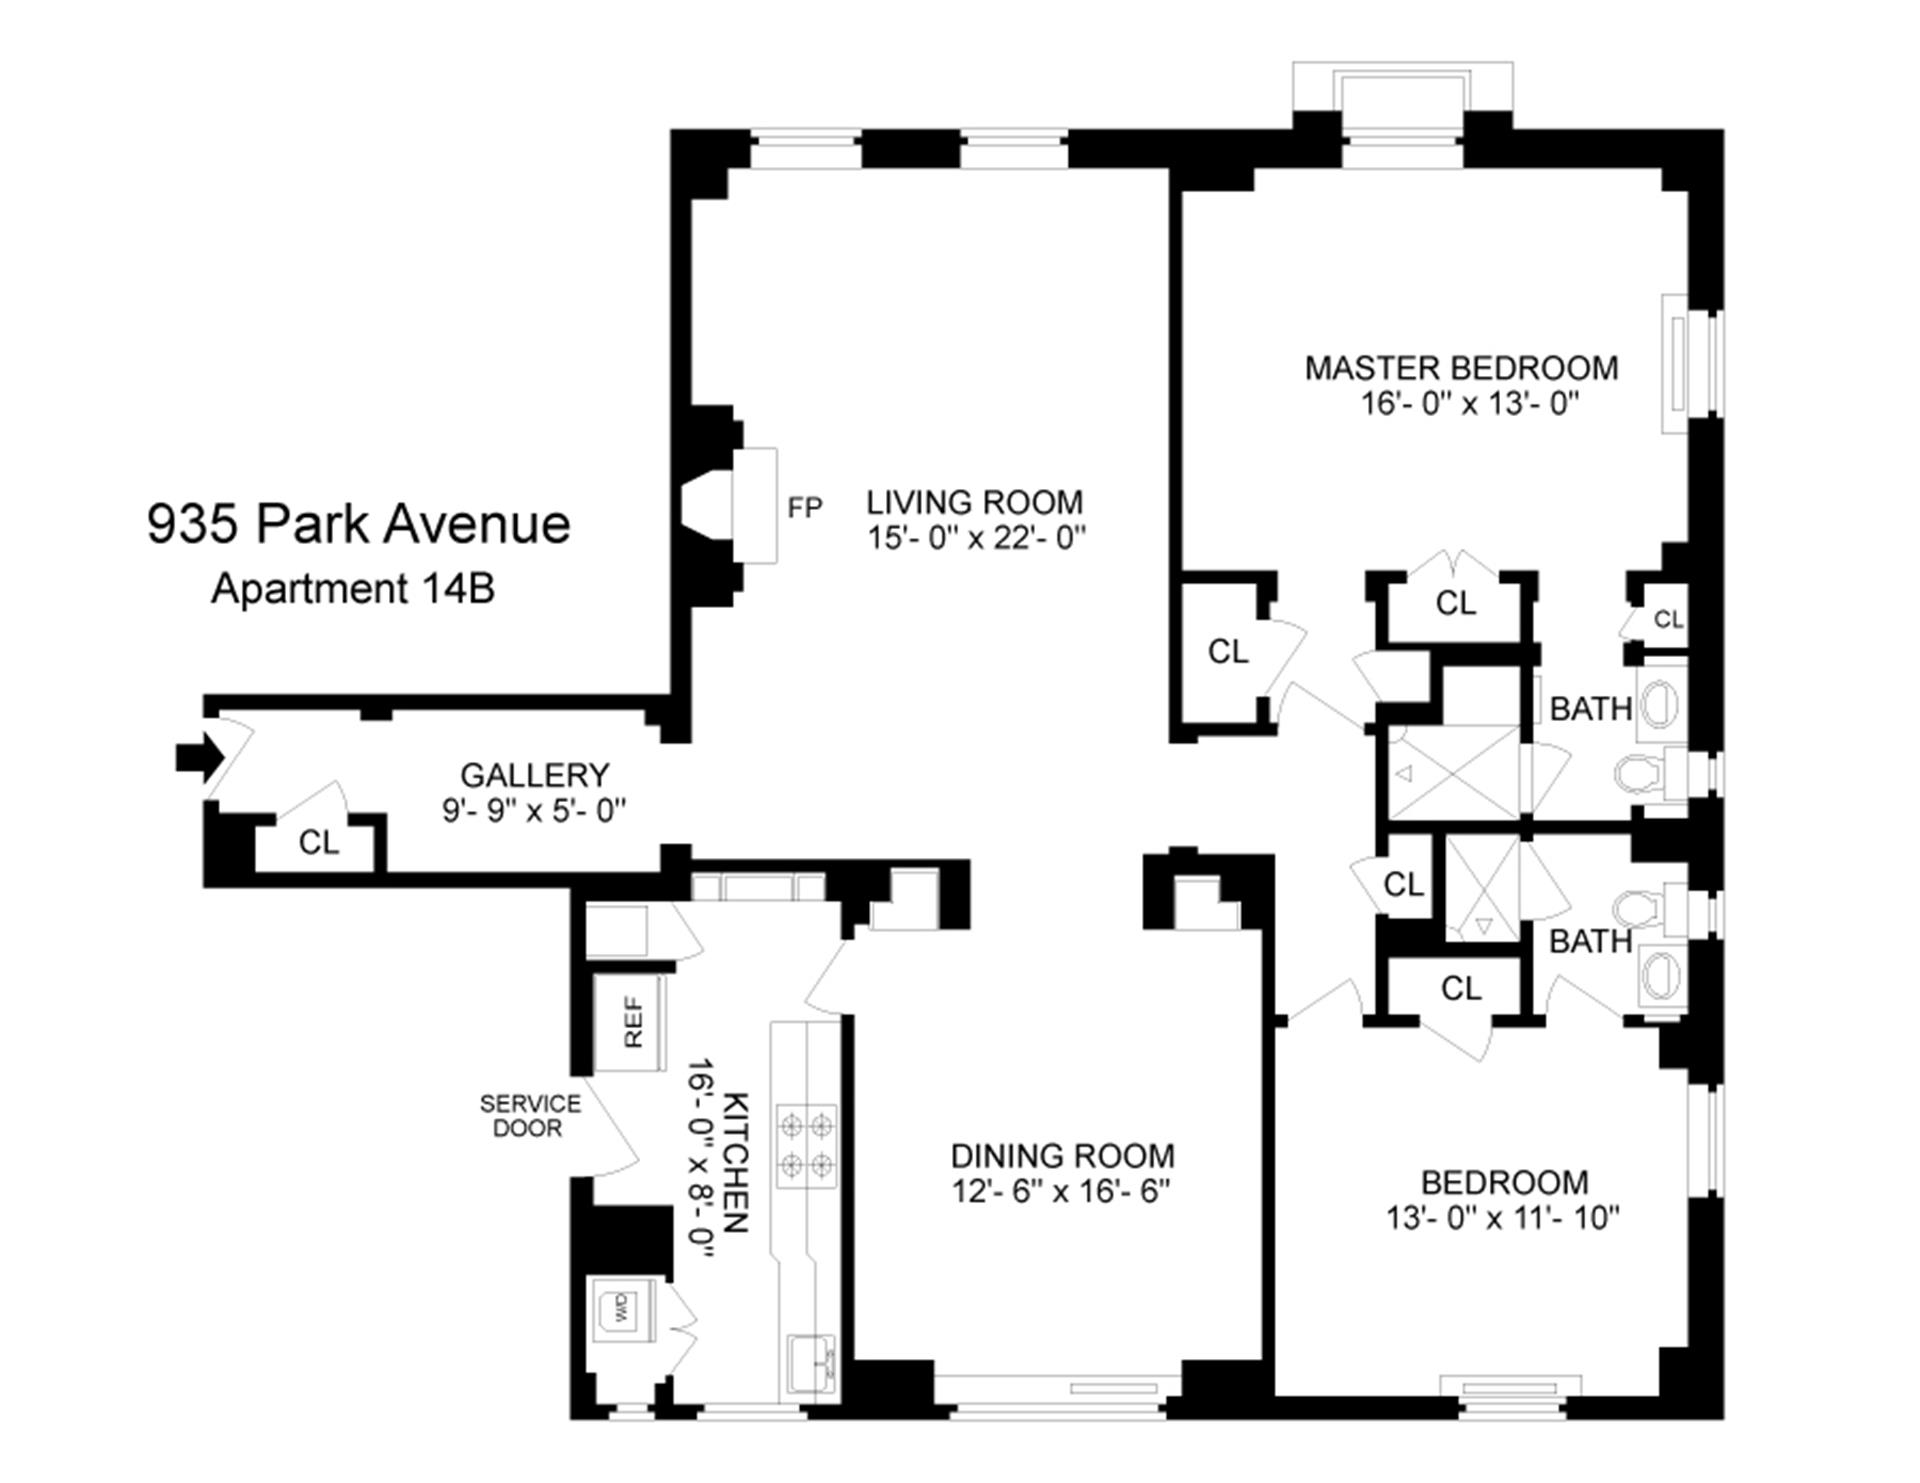 Floor plan of 935 Park Avenue, 14B - Upper East Side, New York